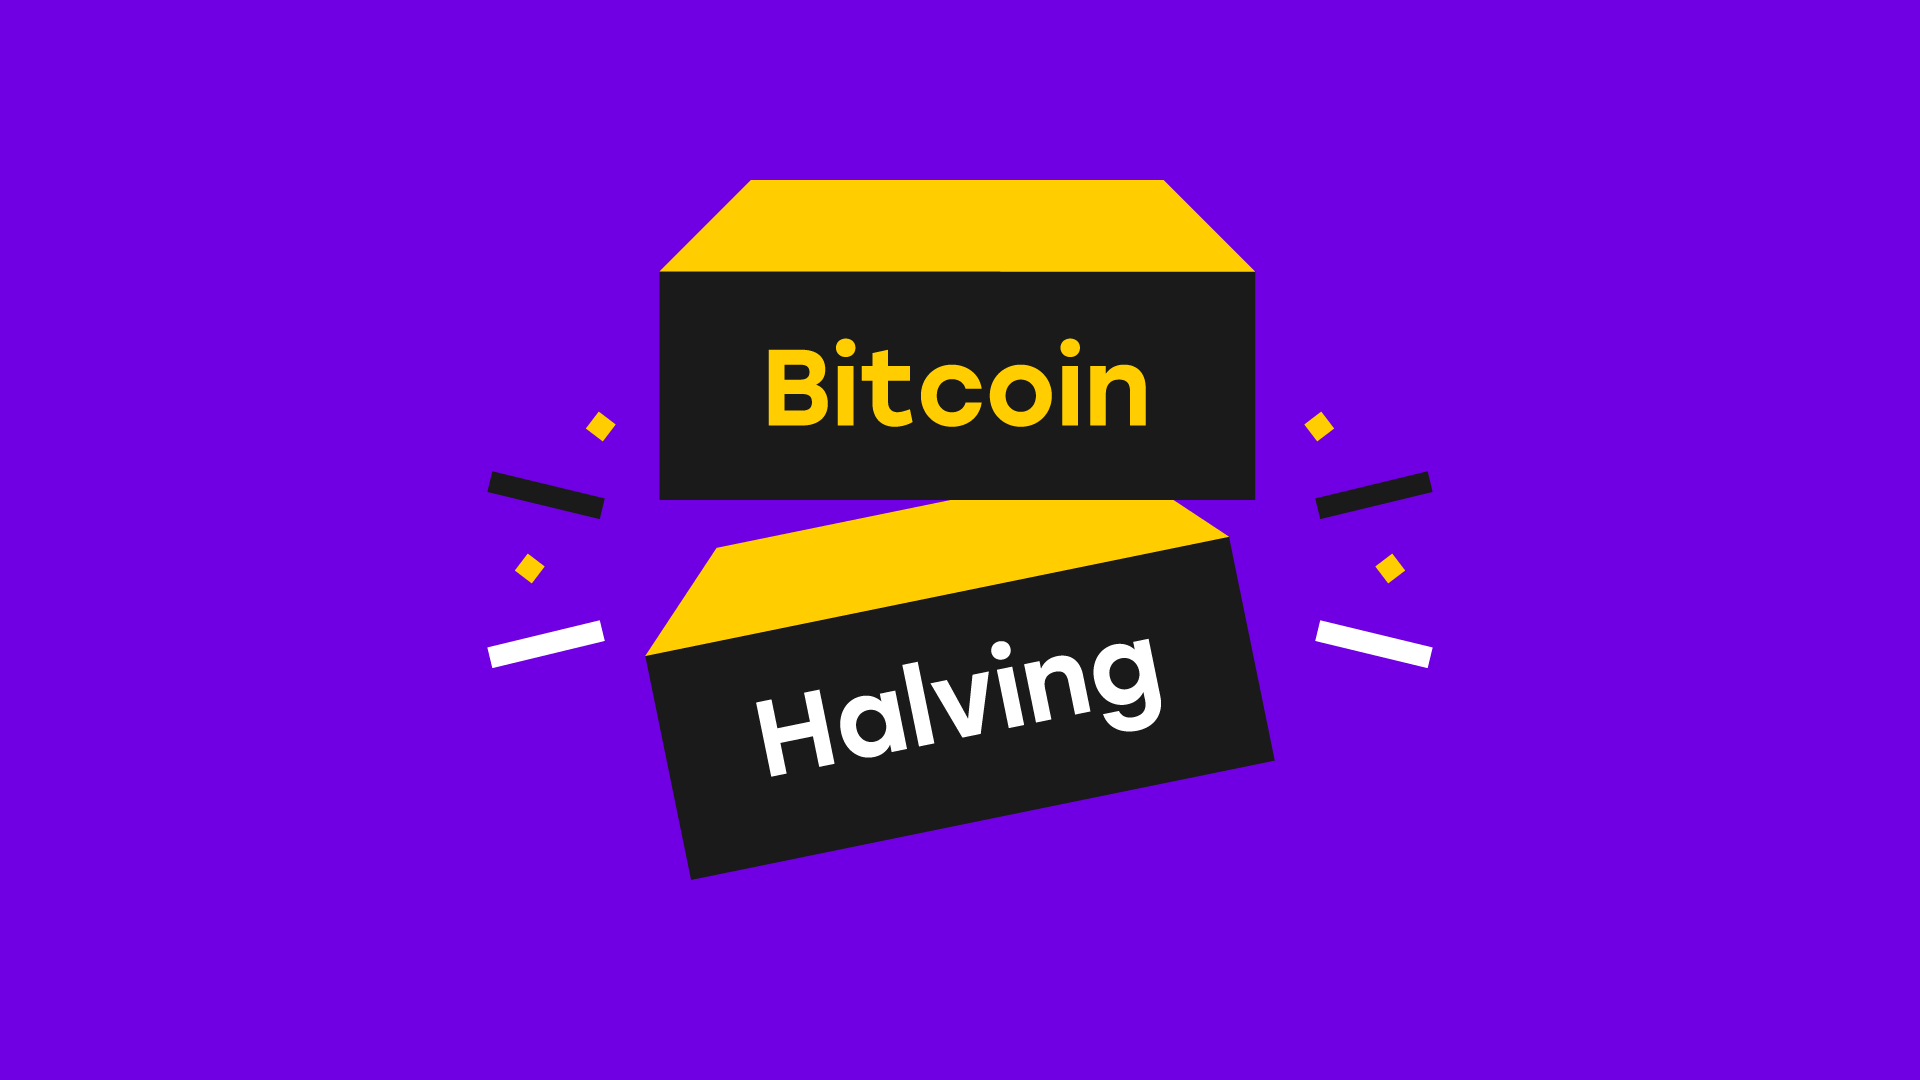 Bitcoin Halving is coming, but what is it?